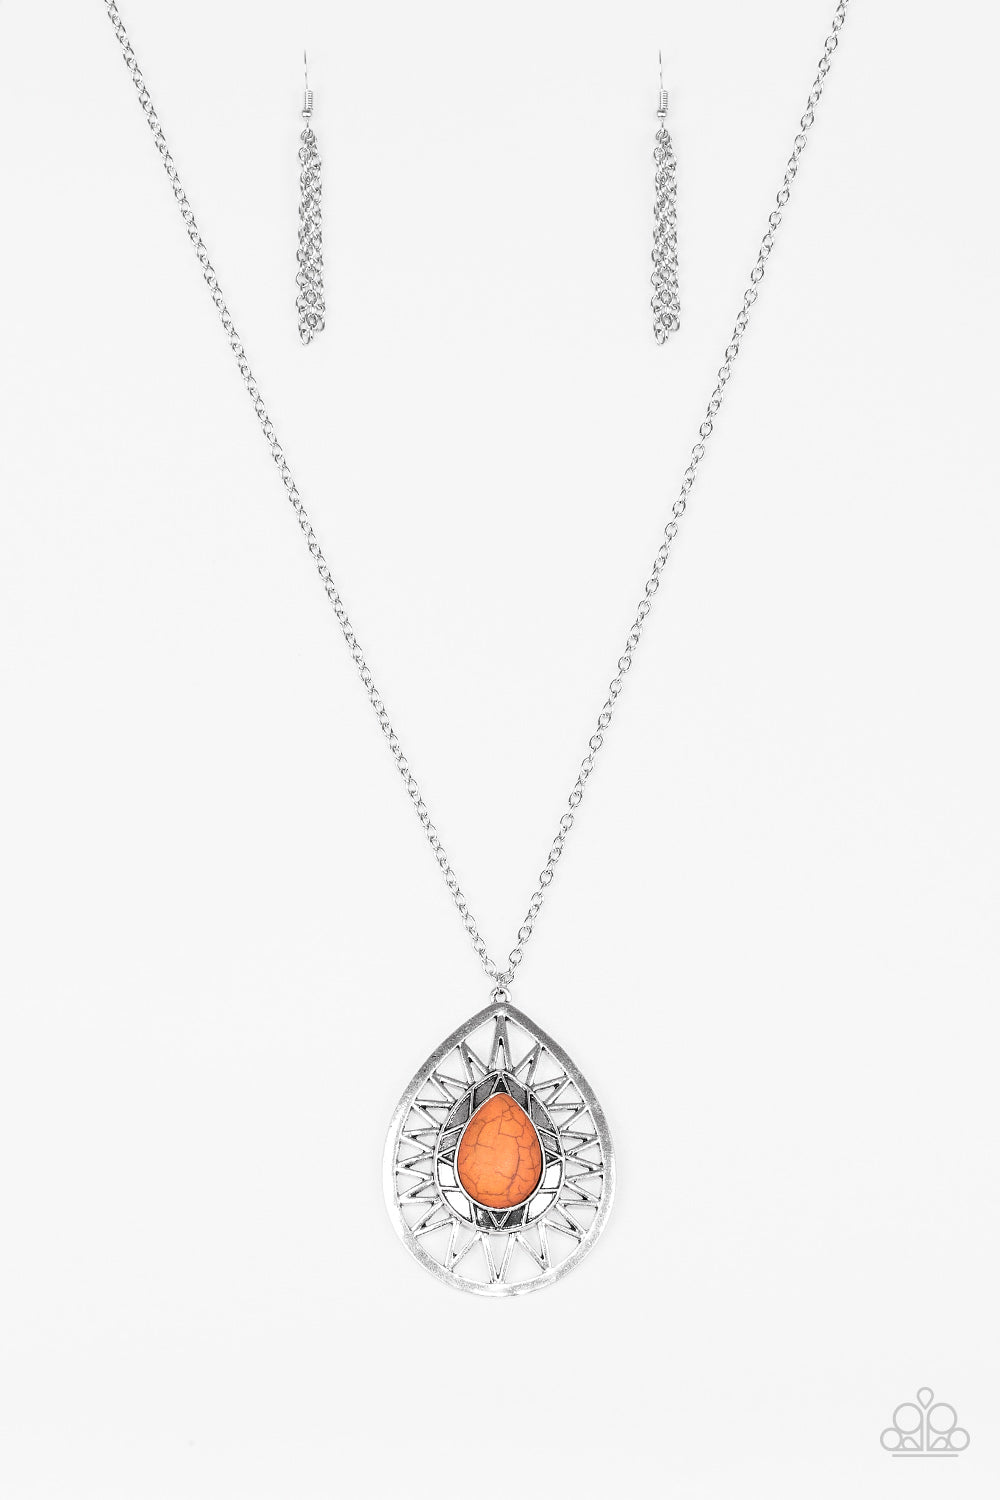 Paparazzi Necklace-Summer Sunbeam-Orange